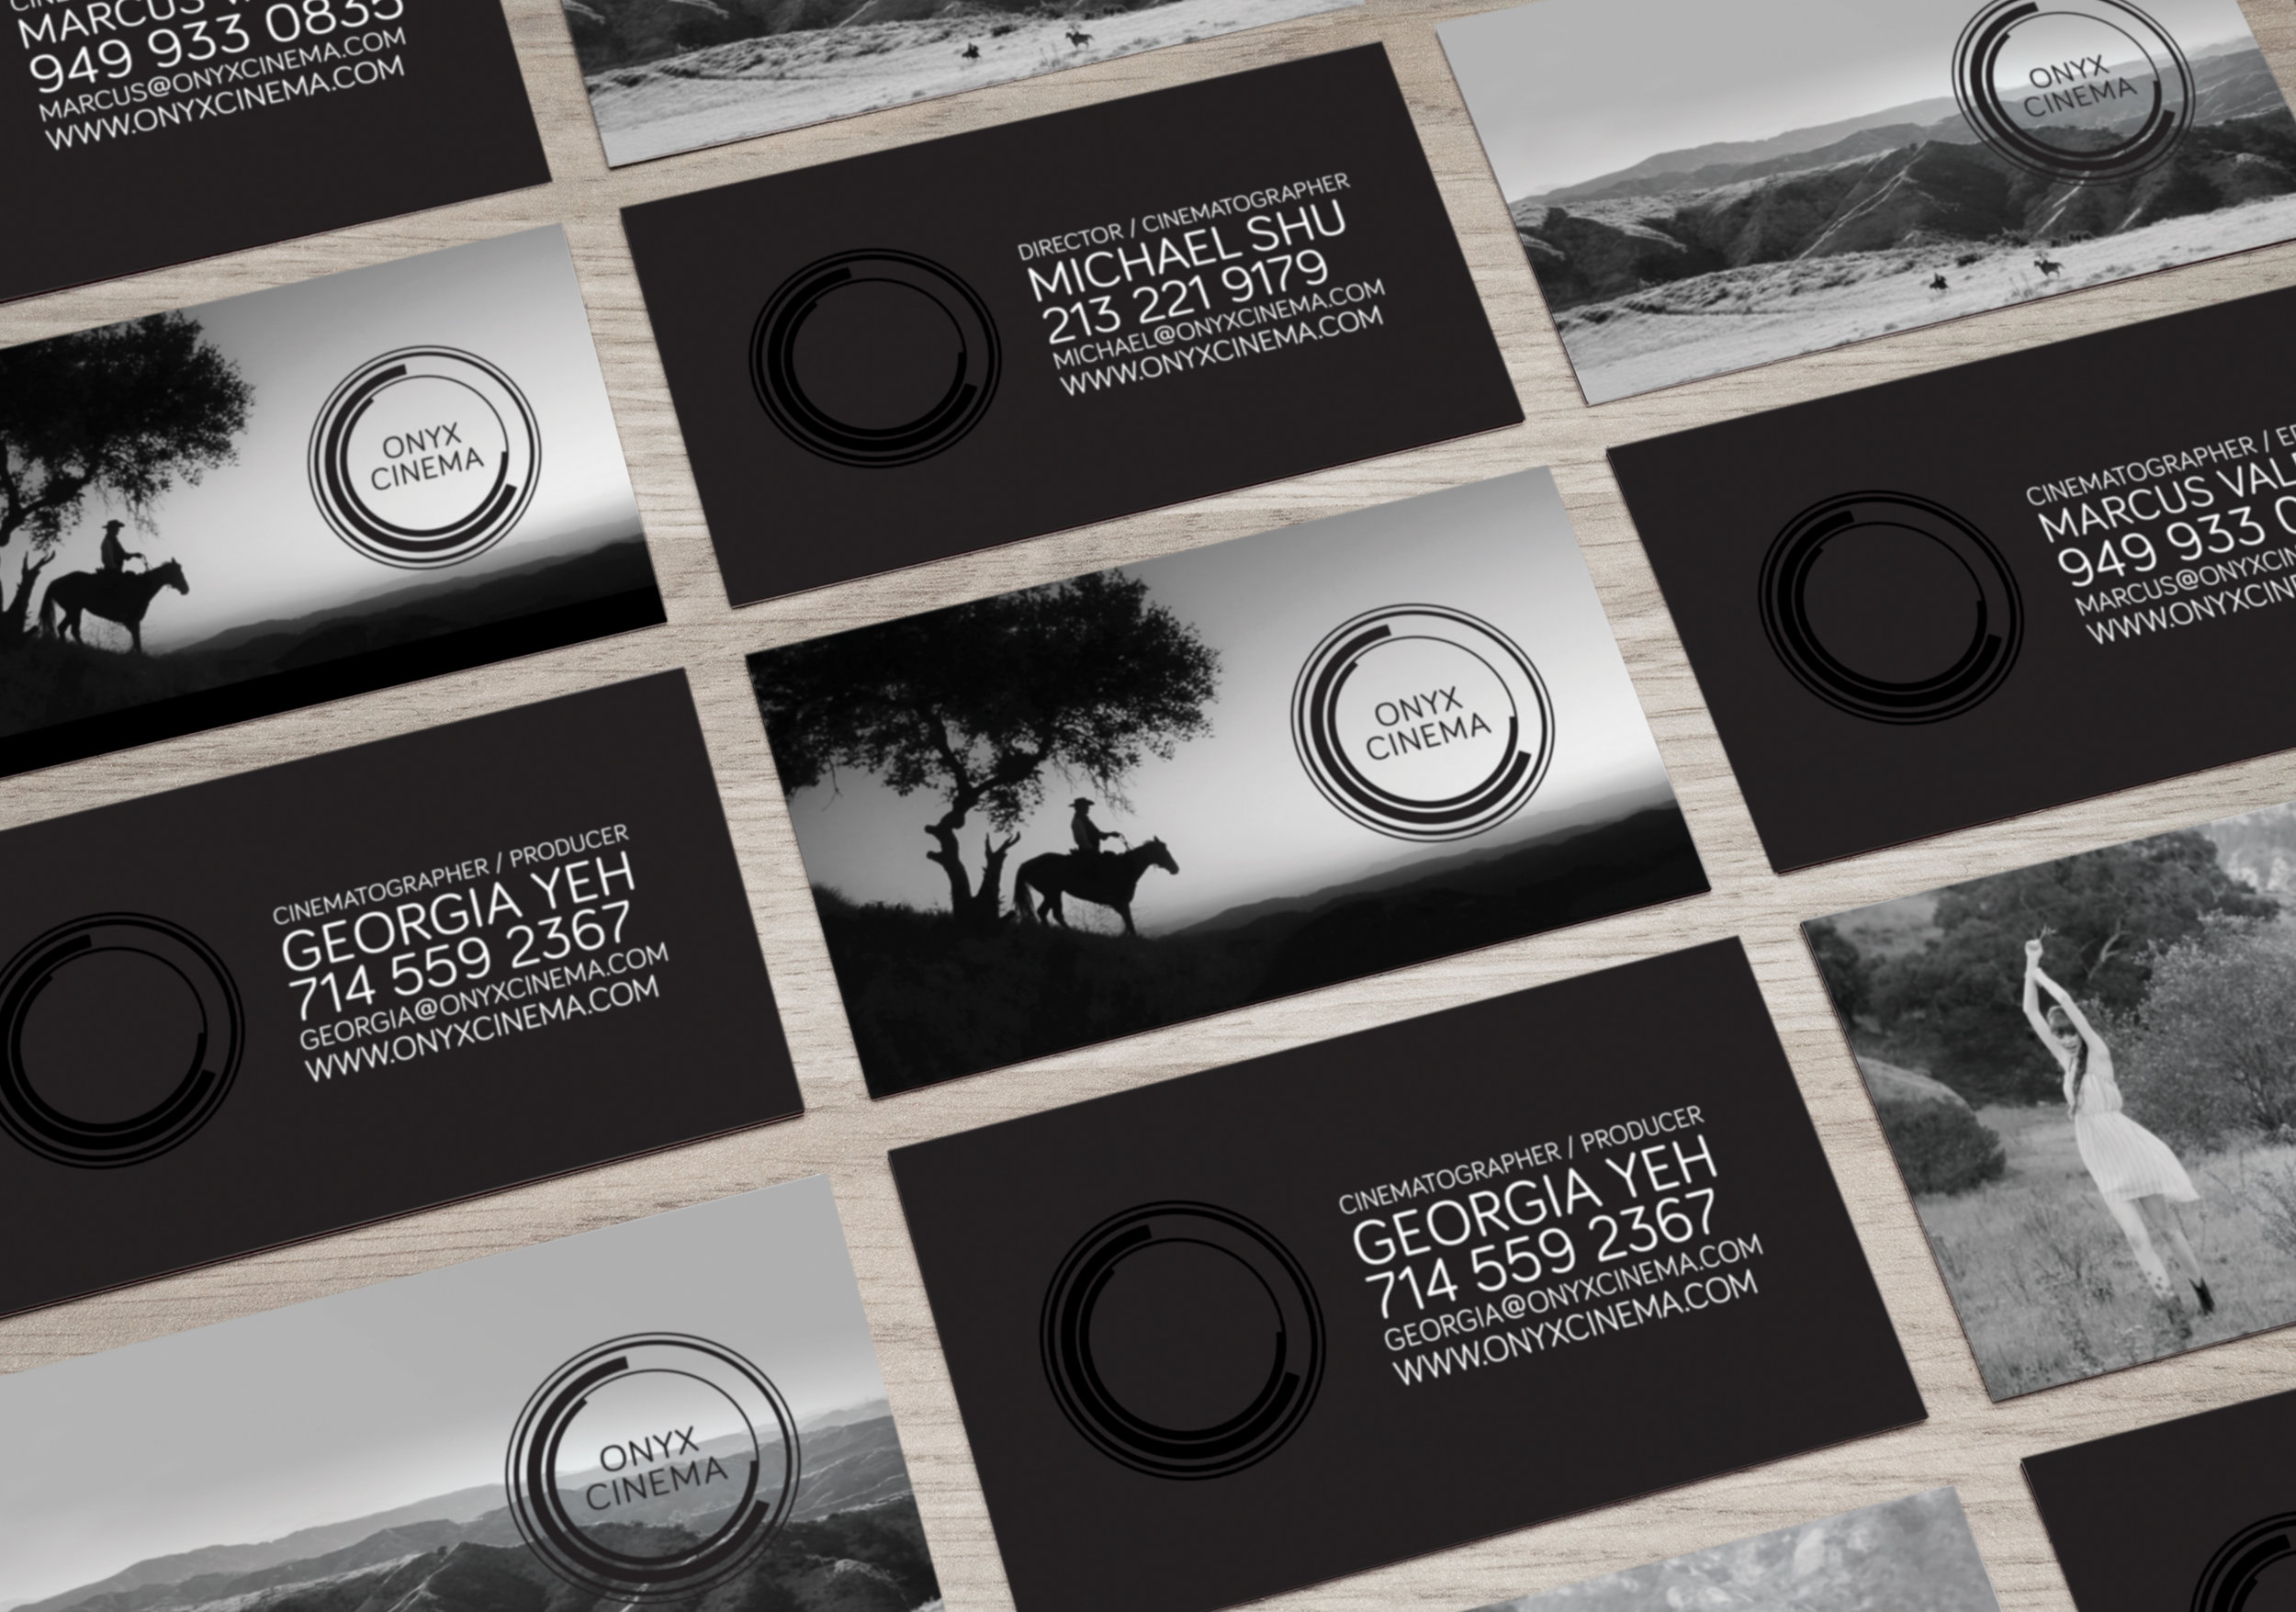 ONYX CINEMA | cinematography commercial video production | business card print design